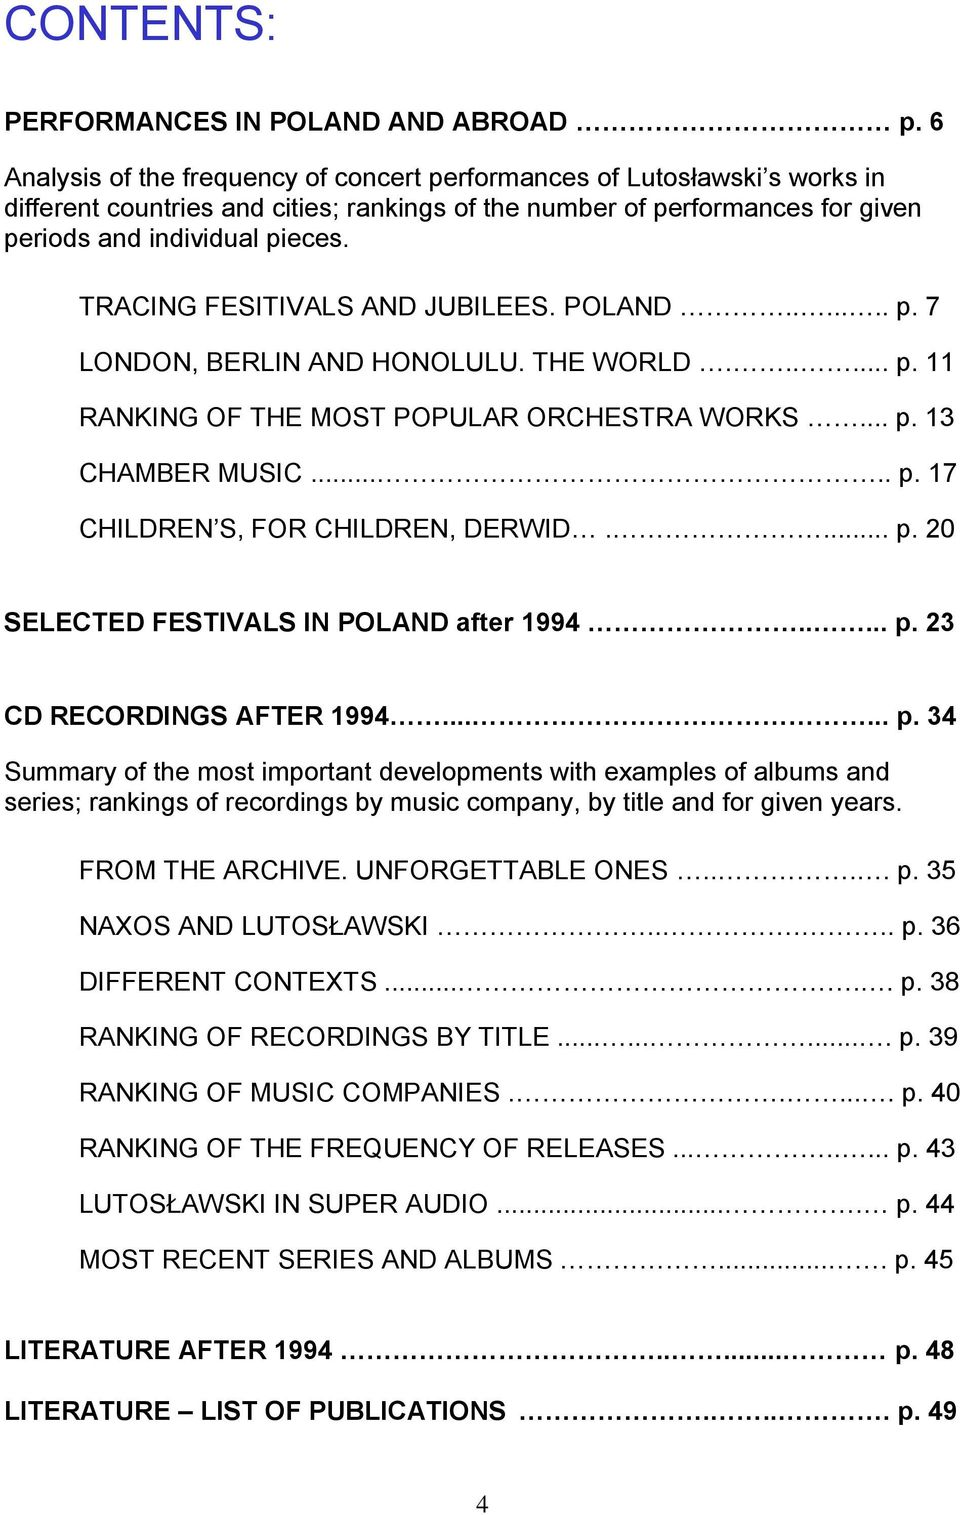 TRACING FESITIVALS AND JUBILEES. POLAND....... p. 7 LONDON, BERLIN AND HONOLULU. THE WORLD...... p. 11 RANKING OF THE MOST POPULAR ORCHESTRA WORKS... p. 13 CHAMBER MUSIC..... p. 17 CHILDREN S, FOR CHILDREN, DERWID.